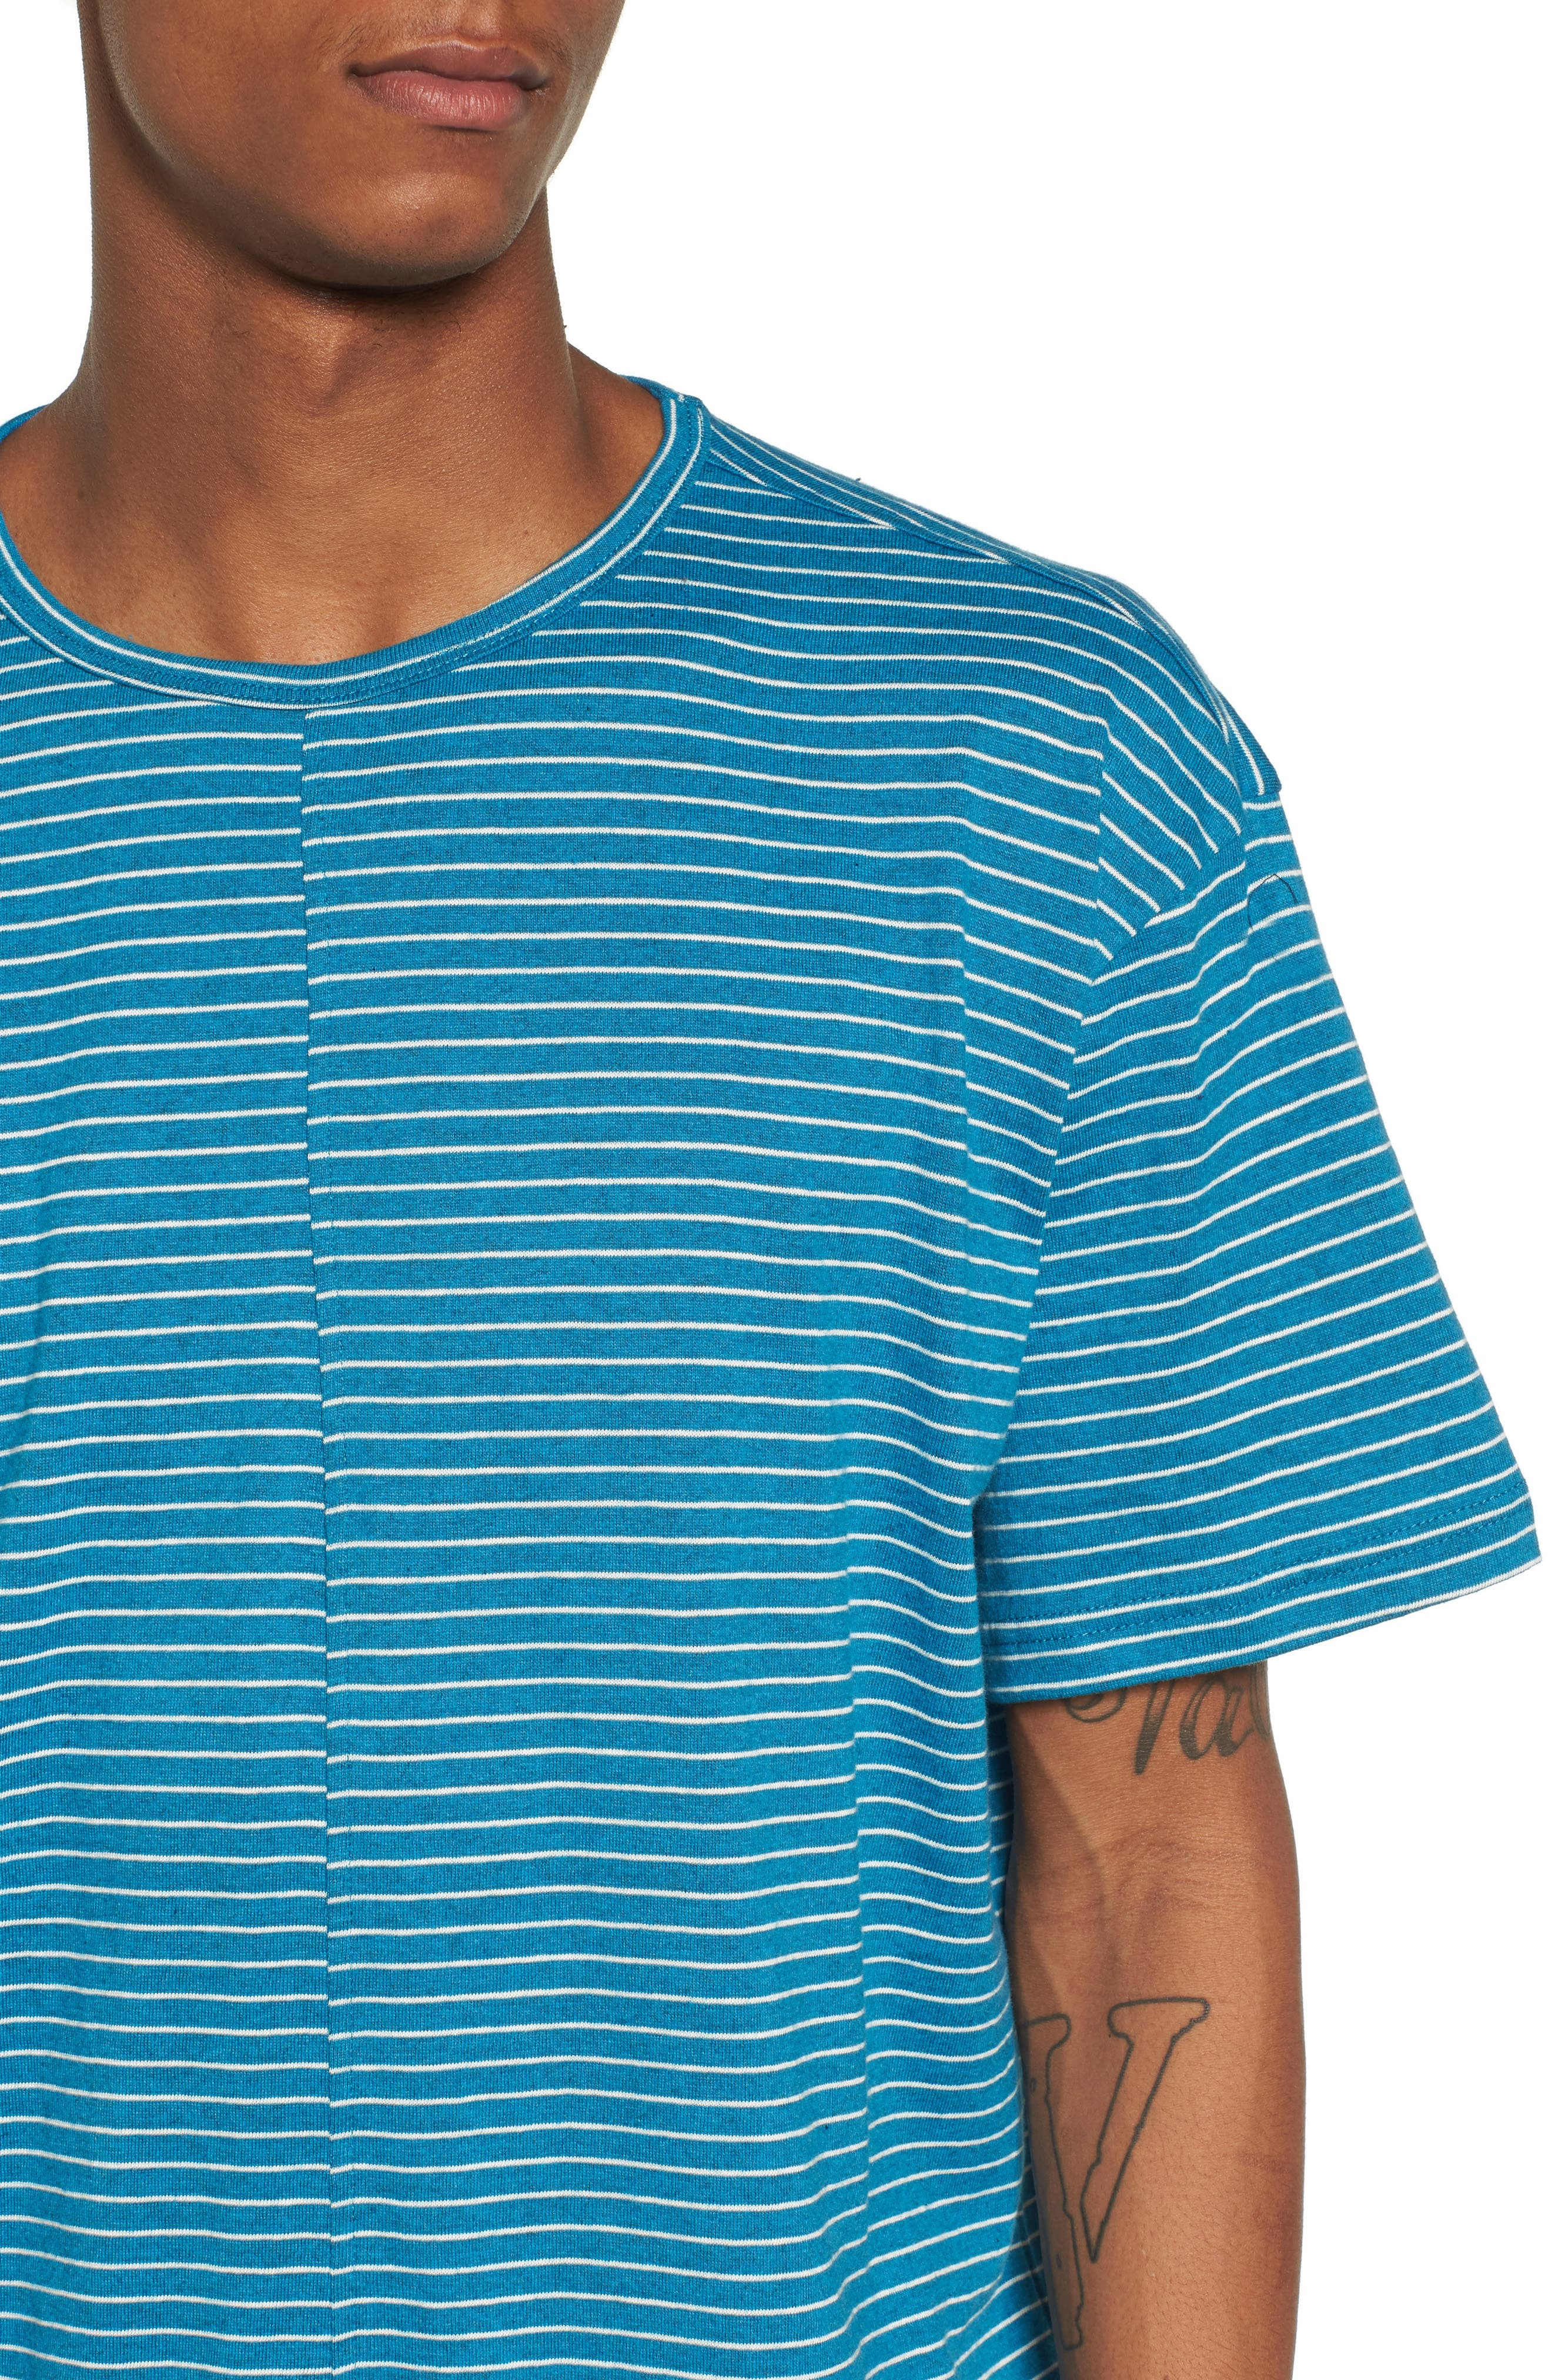 Boost T-Shirt,                             Alternate thumbnail 4, color,                             Teal